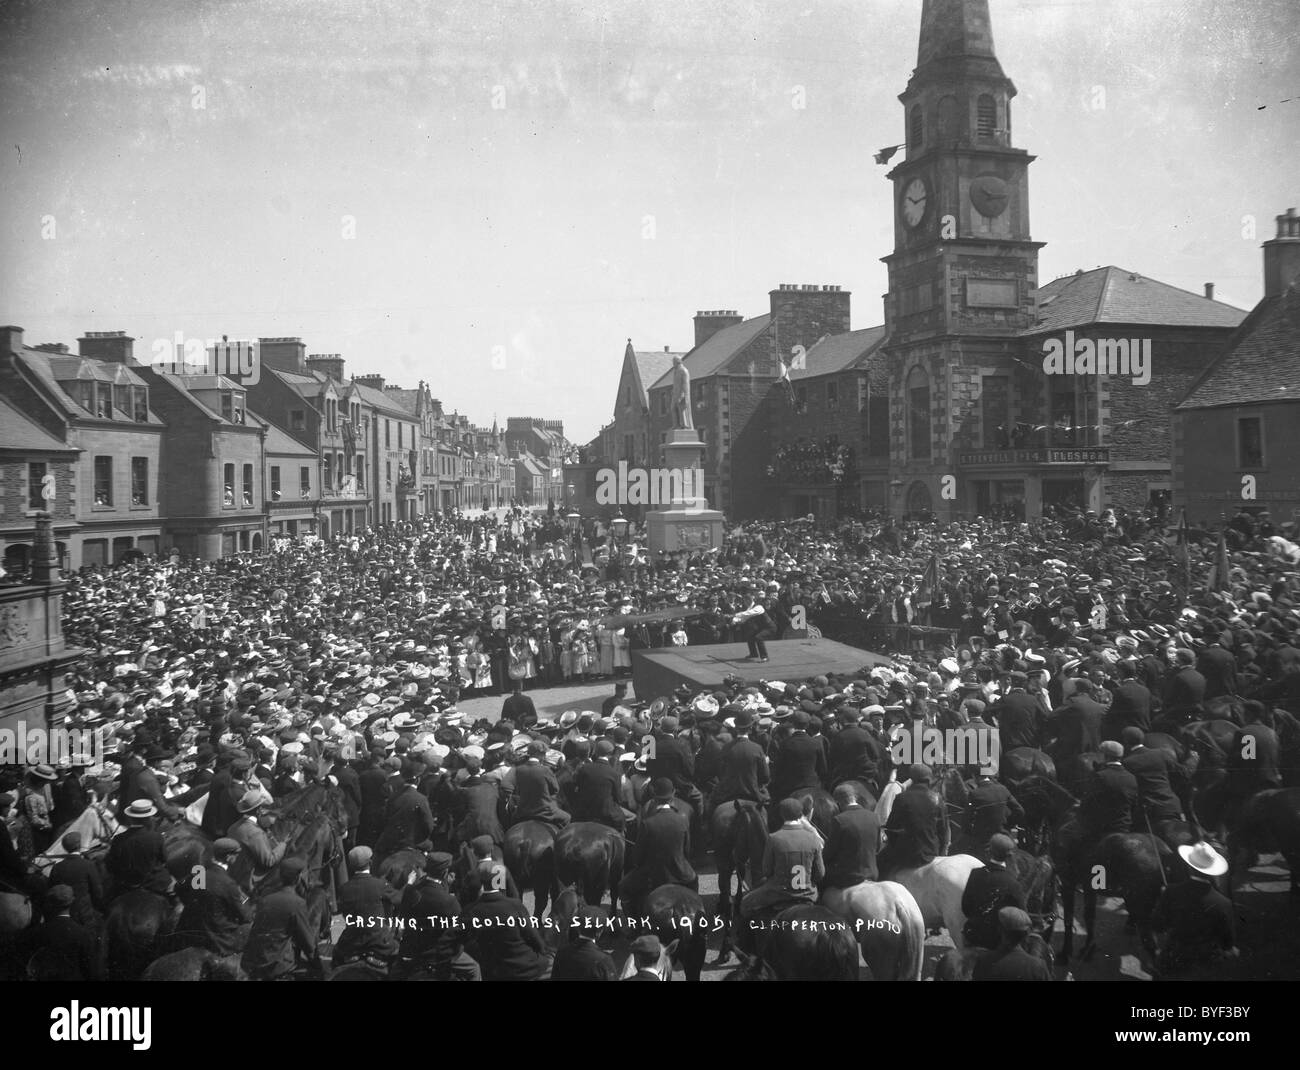 Casting the Colours Selkirk Common Riding 1905 Stock Photo